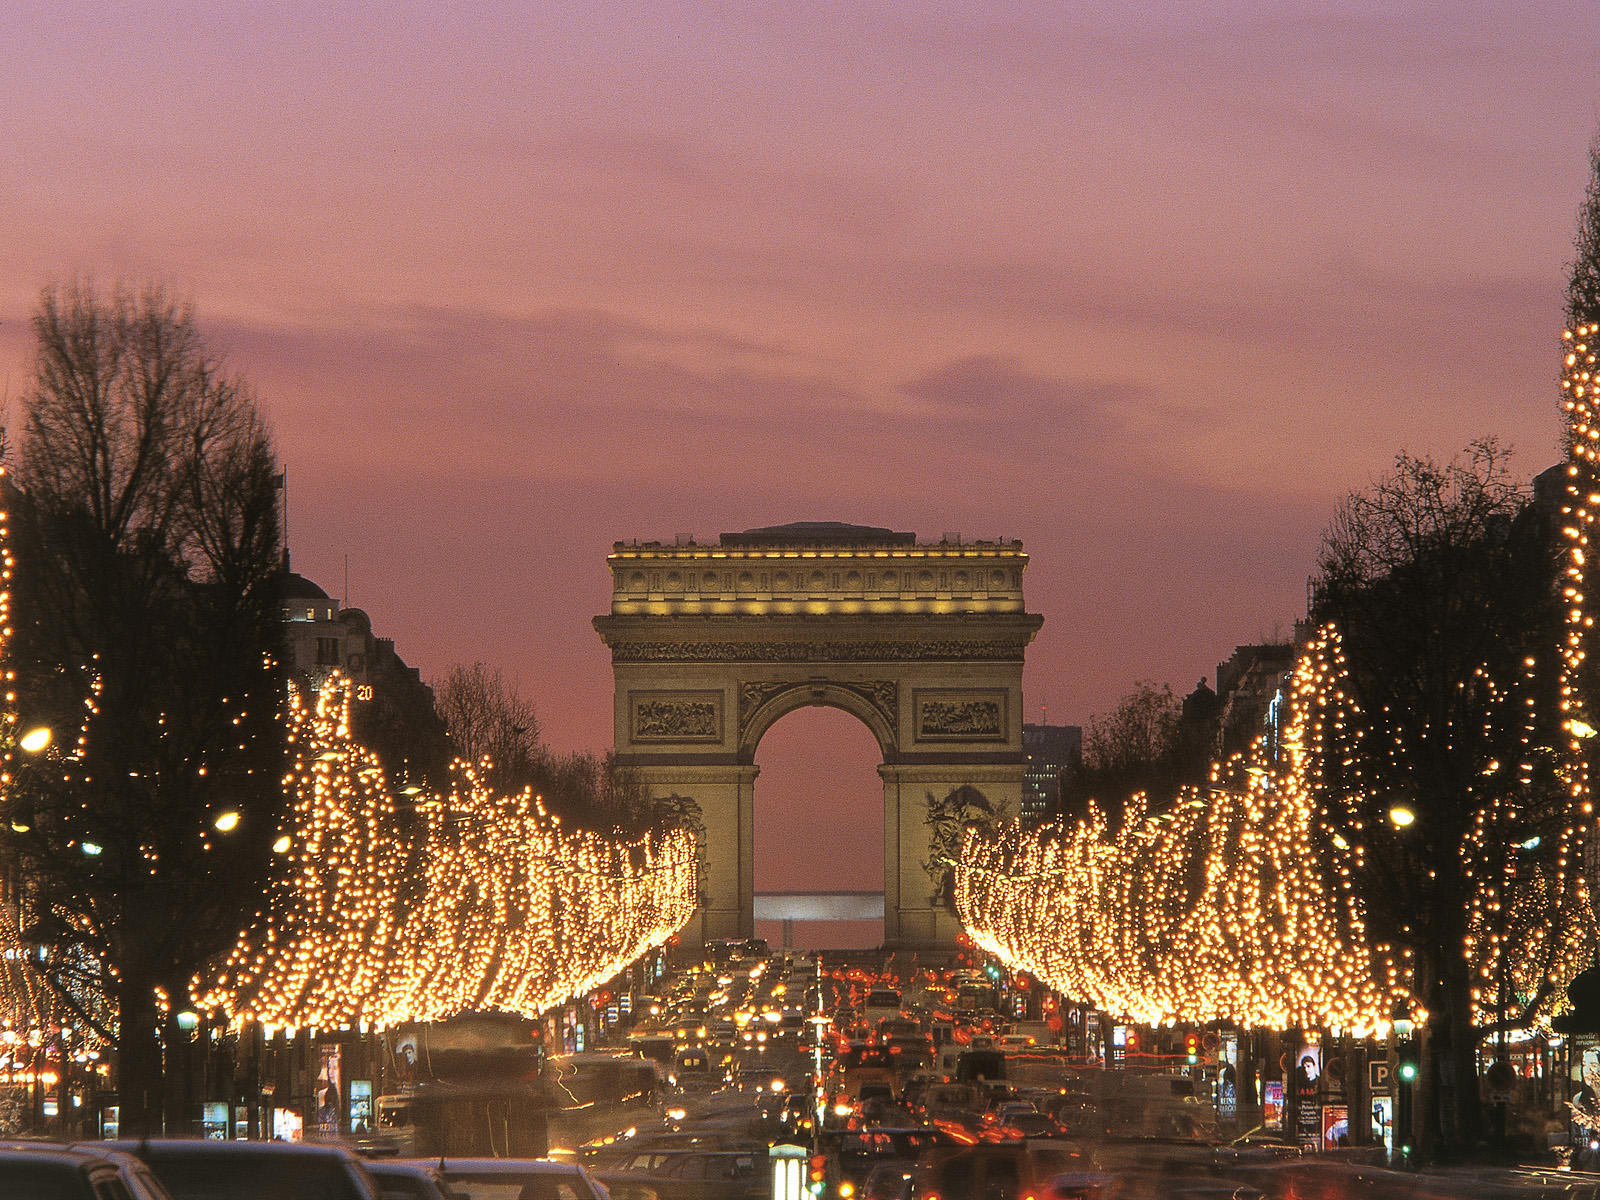 Discovering The City of Lights by Christmas Discovering The City of Lights by Christmas Champs Elysees in December Arc de Triomphe Paris France